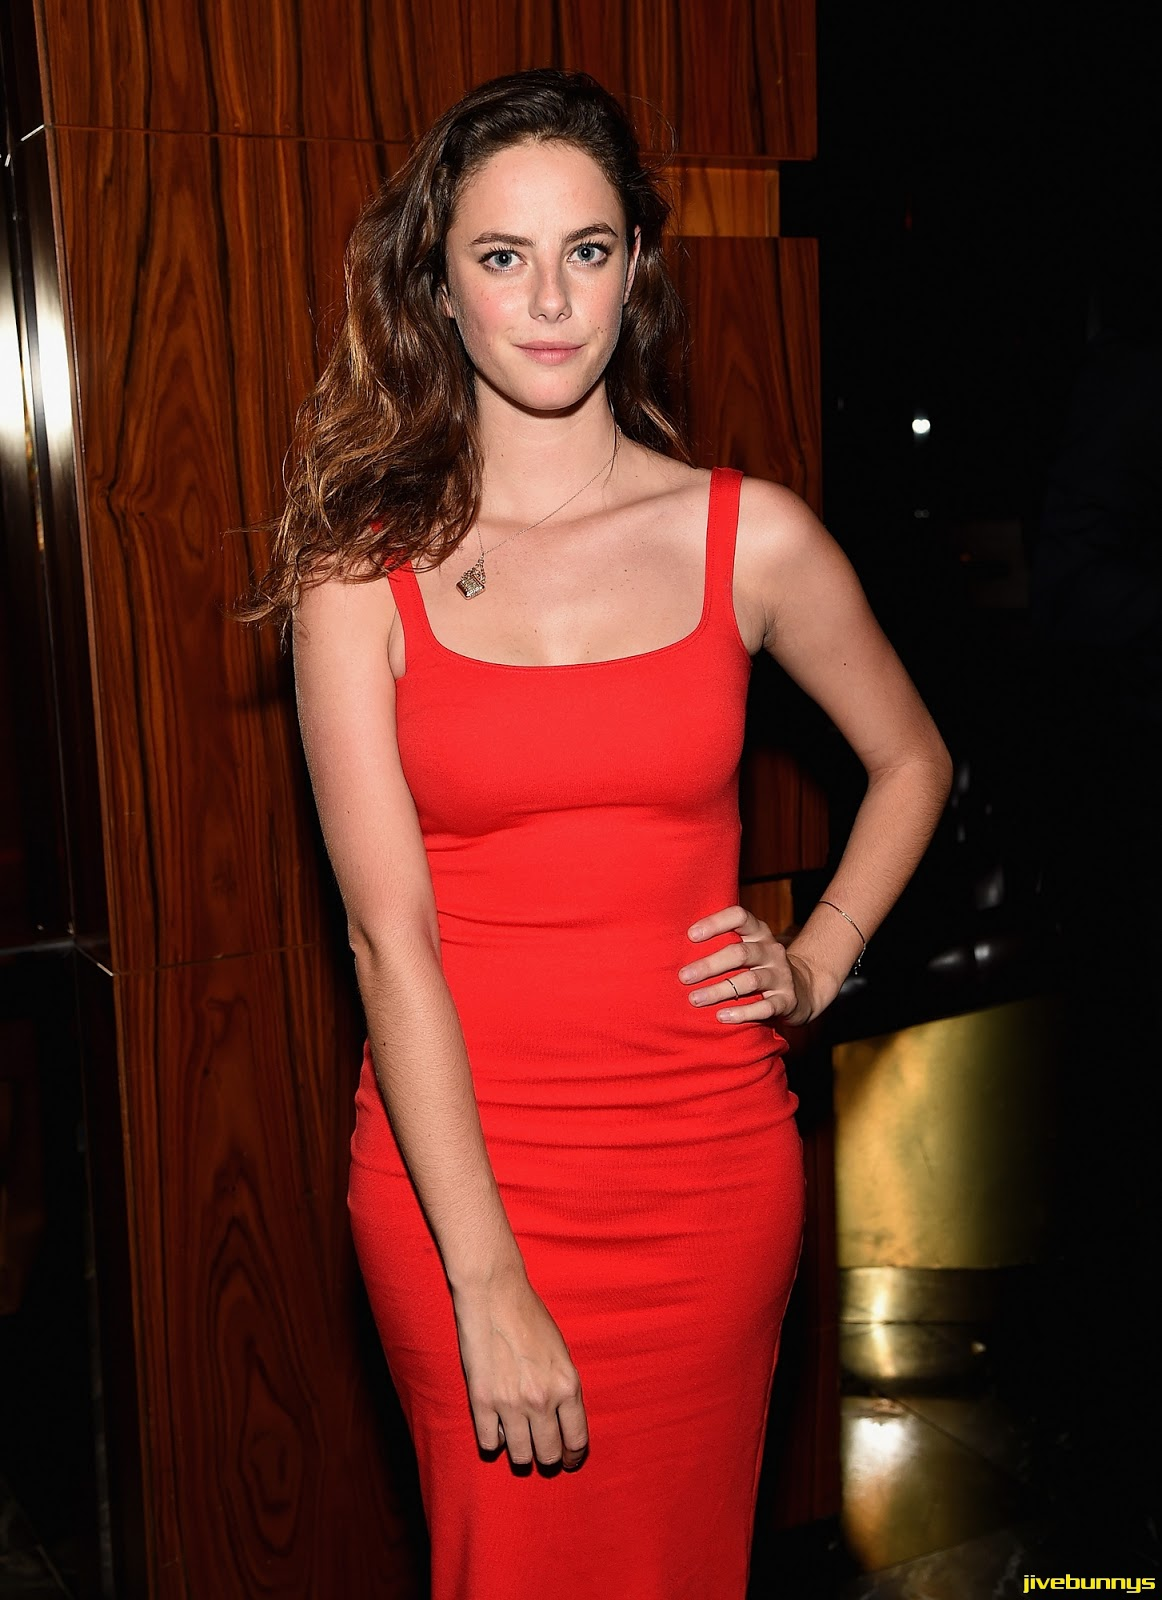 Jivebunnys Female Celebrity Picture Gallery: Kaya Scodelario Photos and Picture Gallery 2